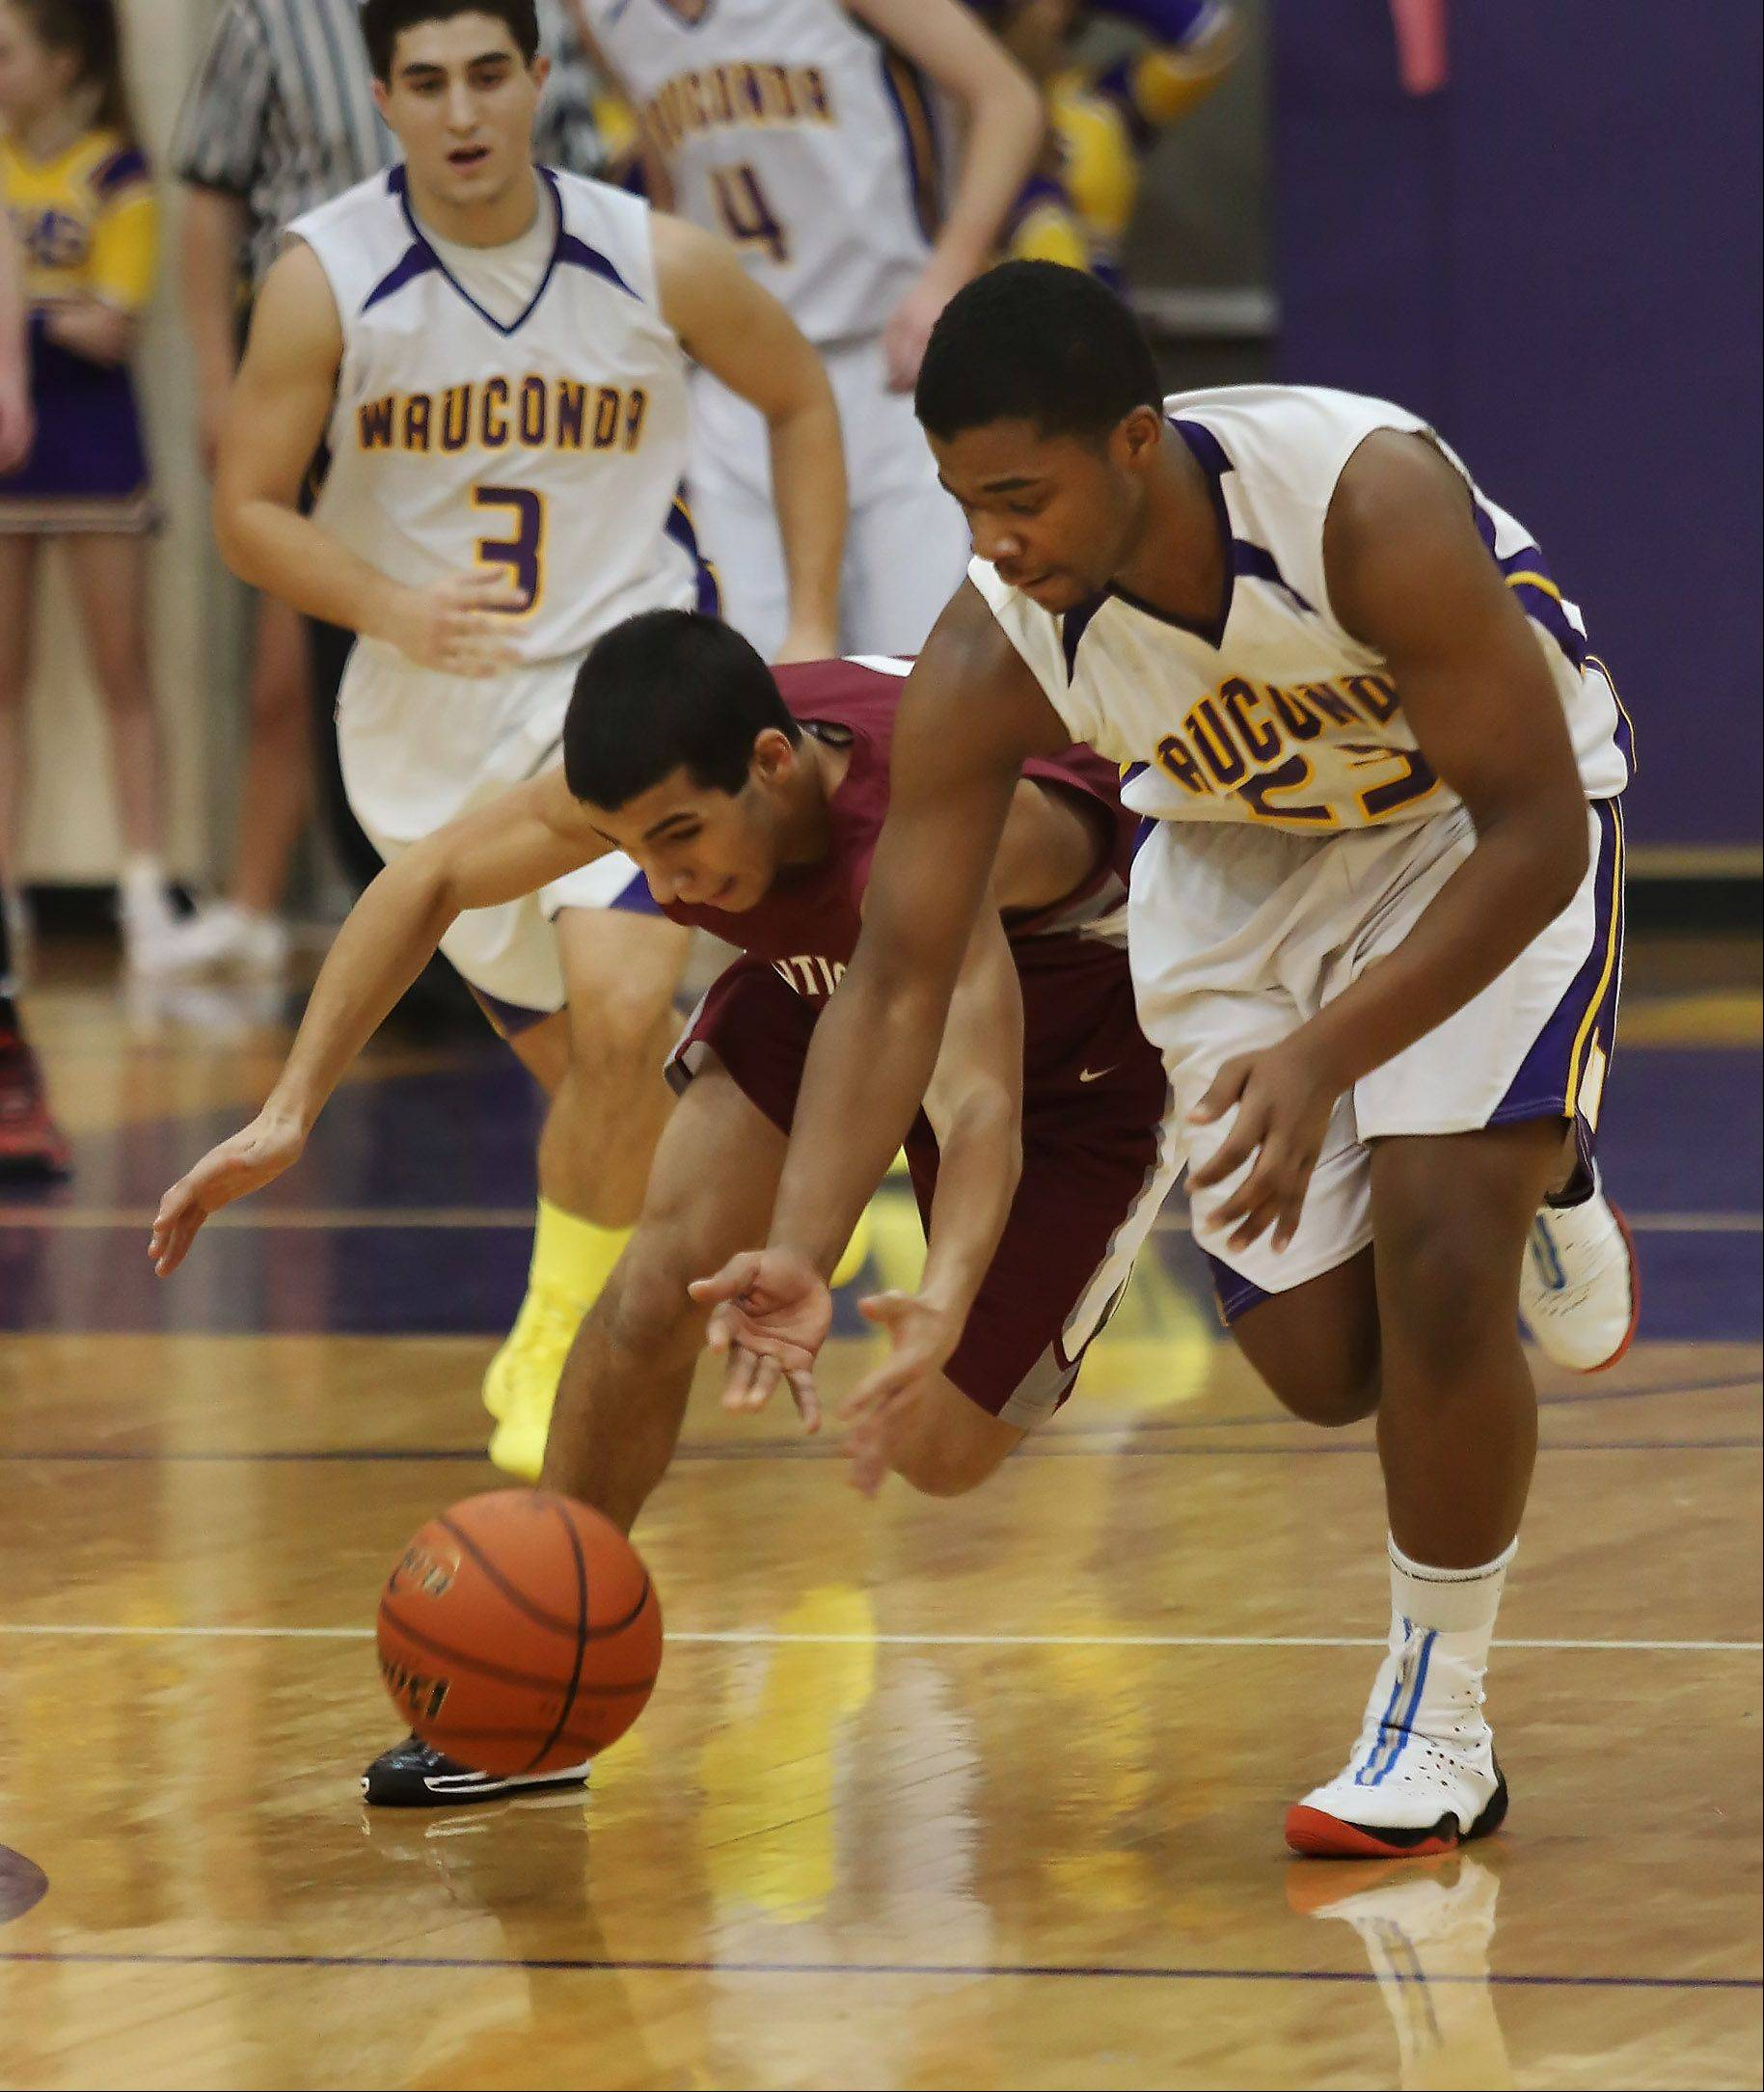 Wauconda forward Dion Head goes after a loose ball from Antioch guard Hamza Abdellatif.